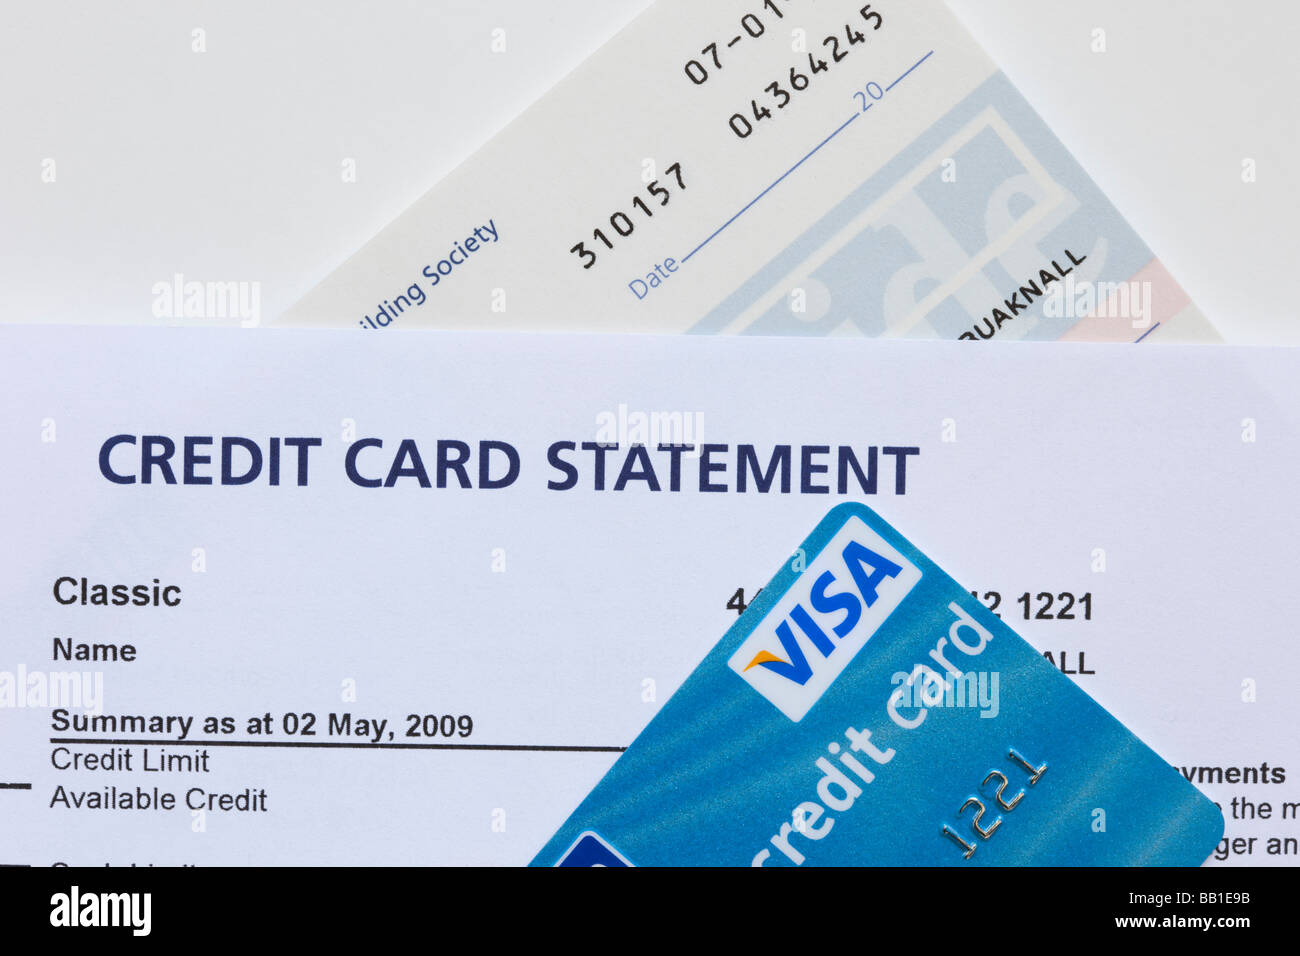 Credit card statement with Visa card and cheque book close up